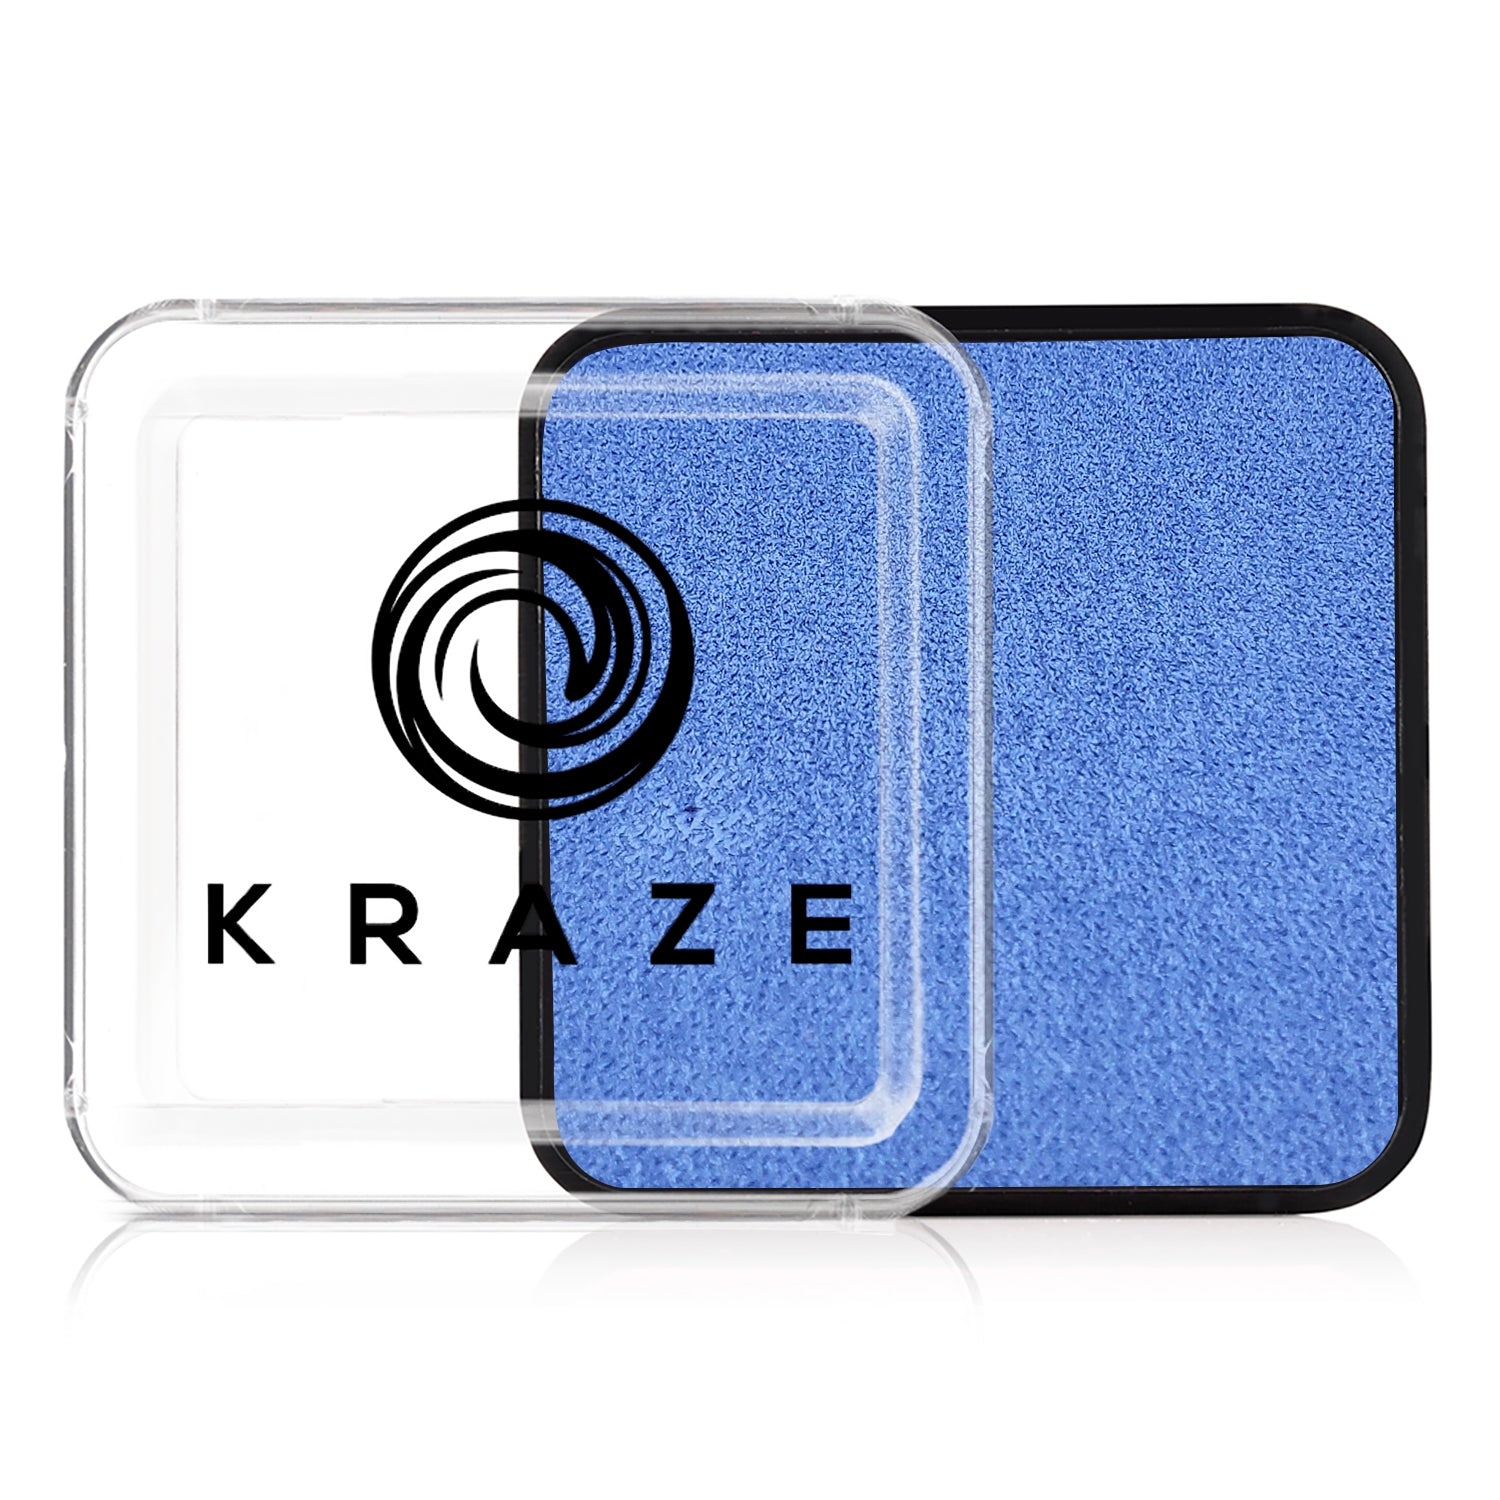 Kraze Metallic Periwinkle Square - 25 gm